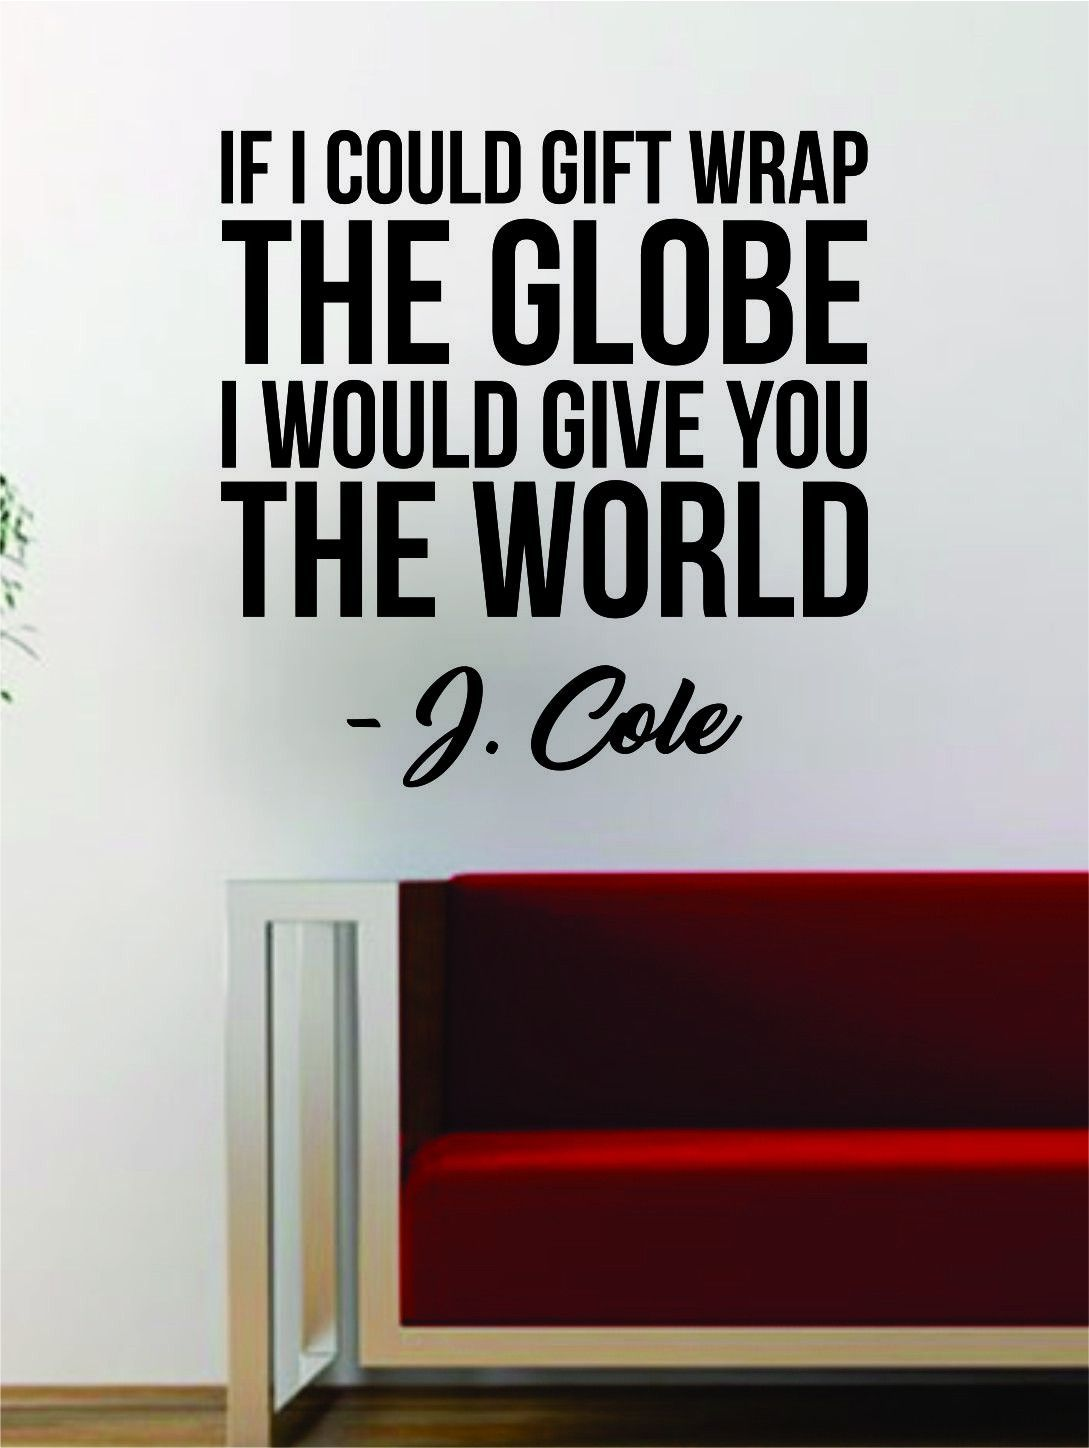 J cole gift wrap the globe quote decal sticker wall vinyl